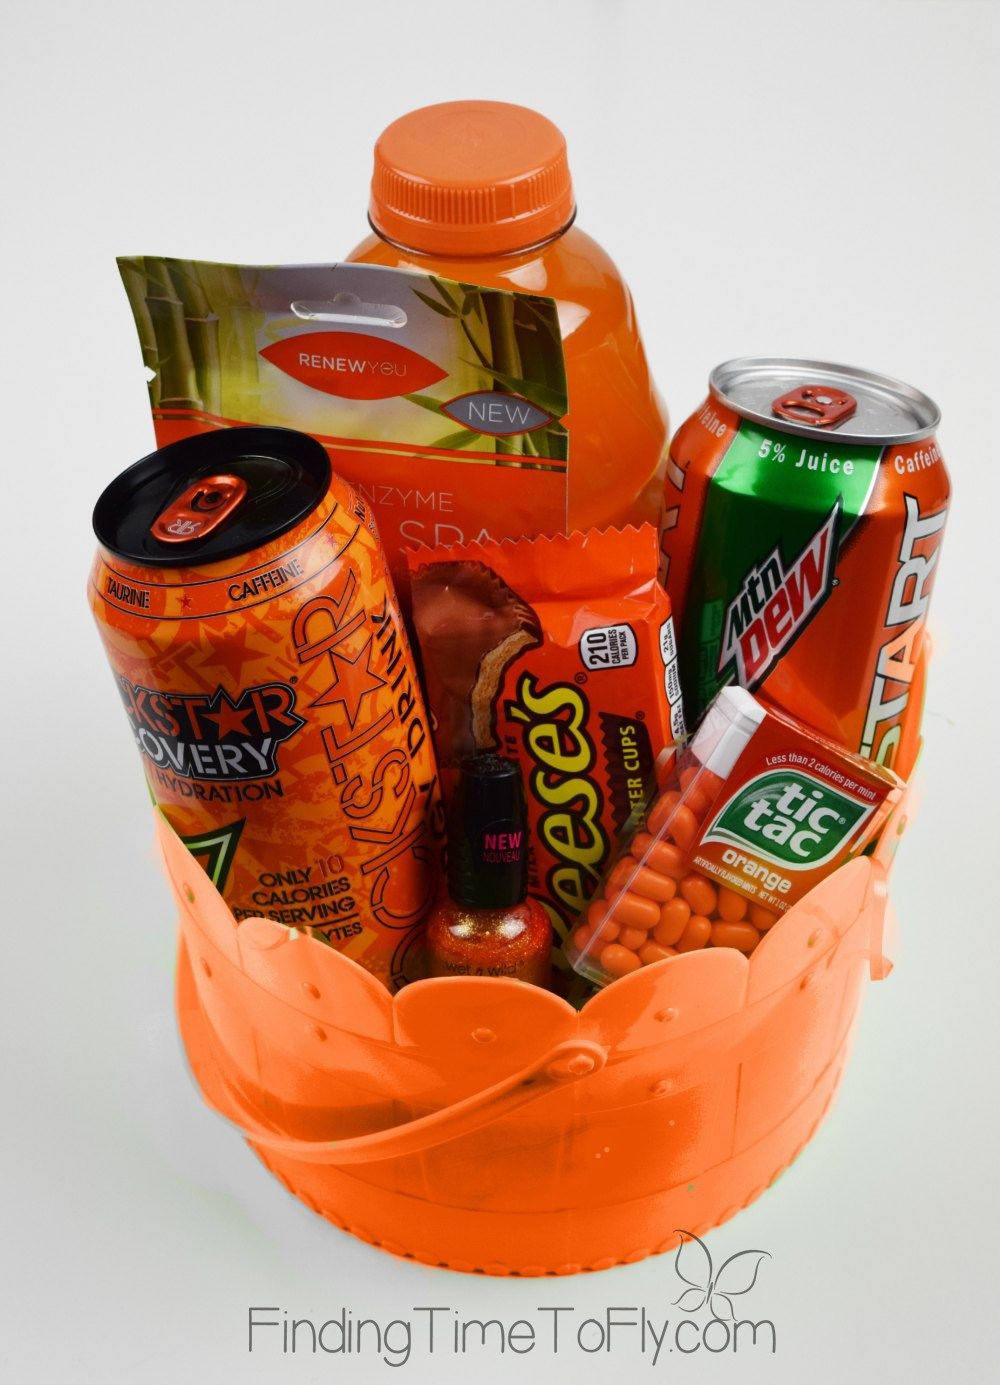 DIY Gift Baskets | Colin | Pinterest | Gift baskets, Gifts and Diy ...